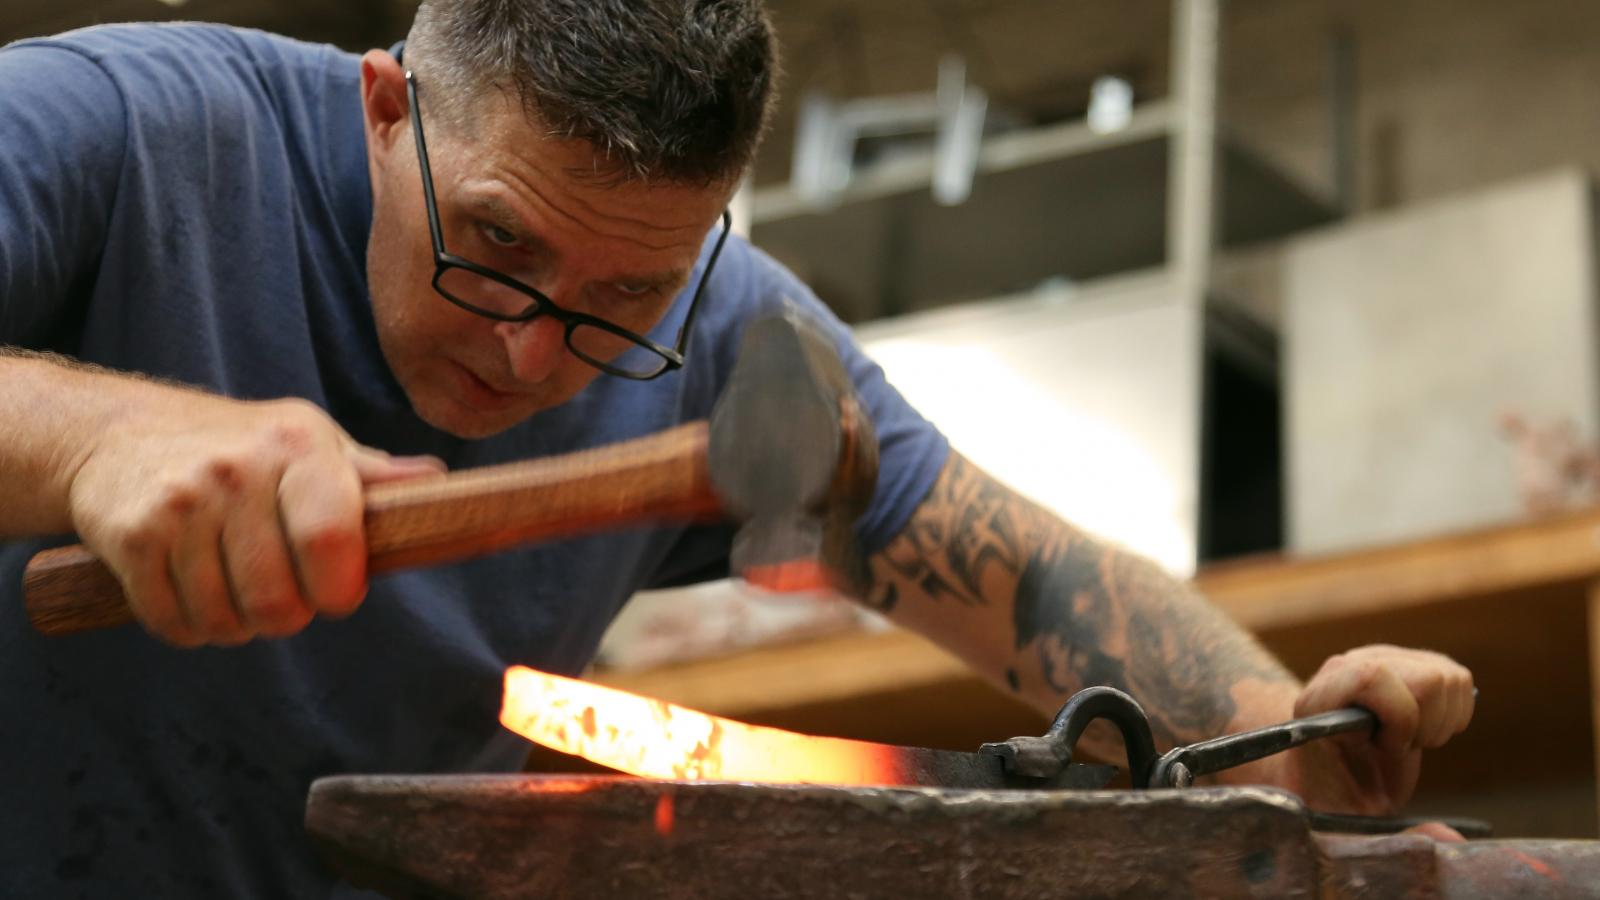 Man looks closely at a blade he is forging